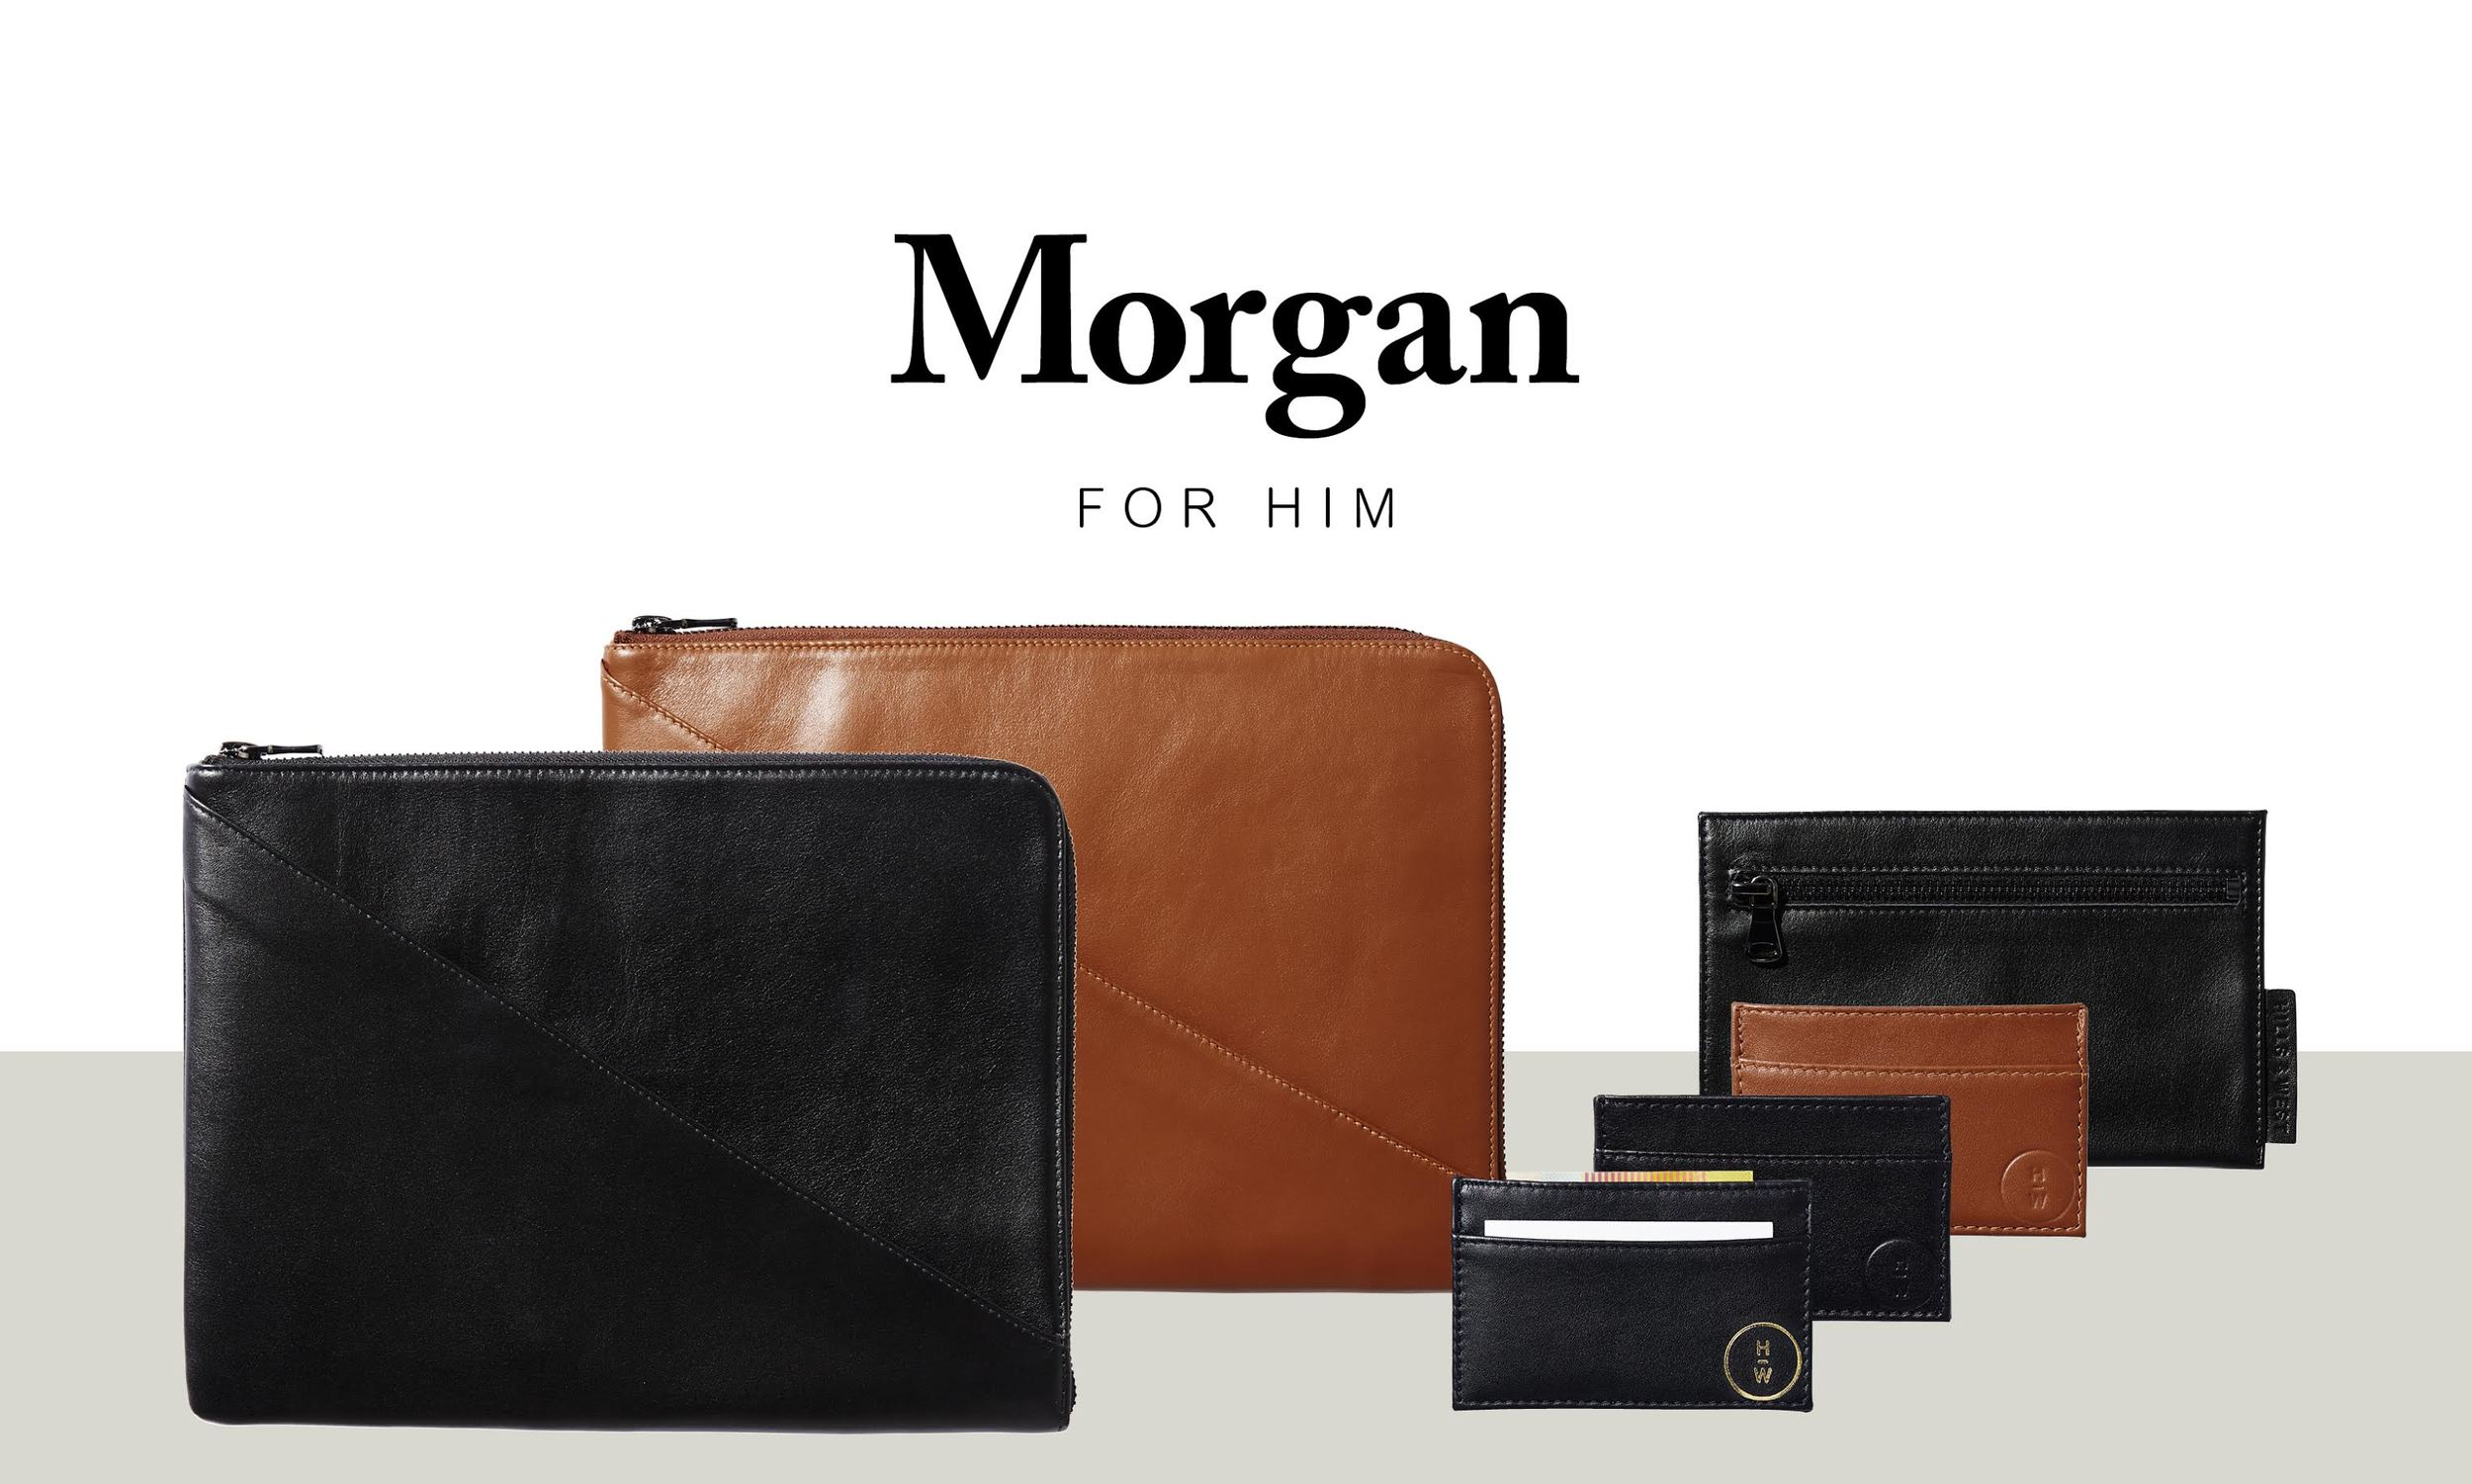 For him - The Morgan Collection